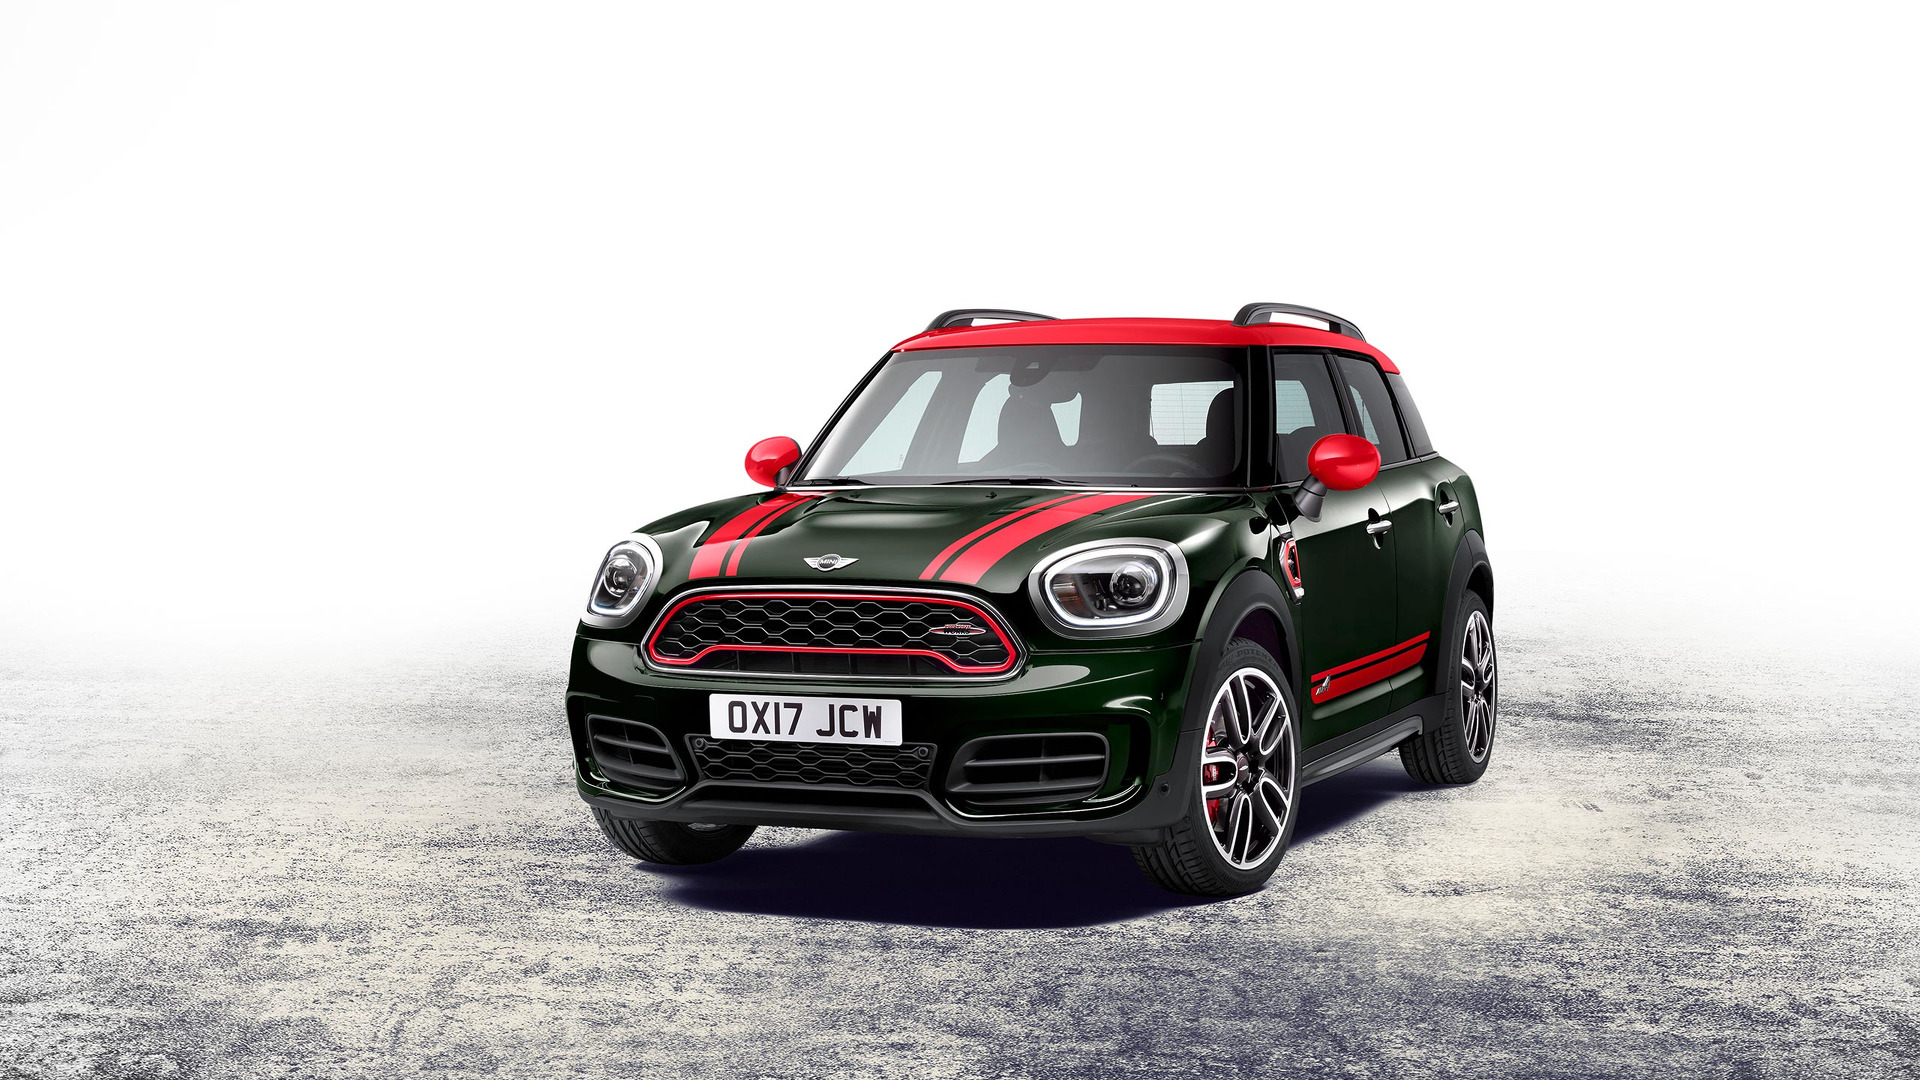 2018 Countryman Jcw Packs 228 Hp Into Not So Mini Body